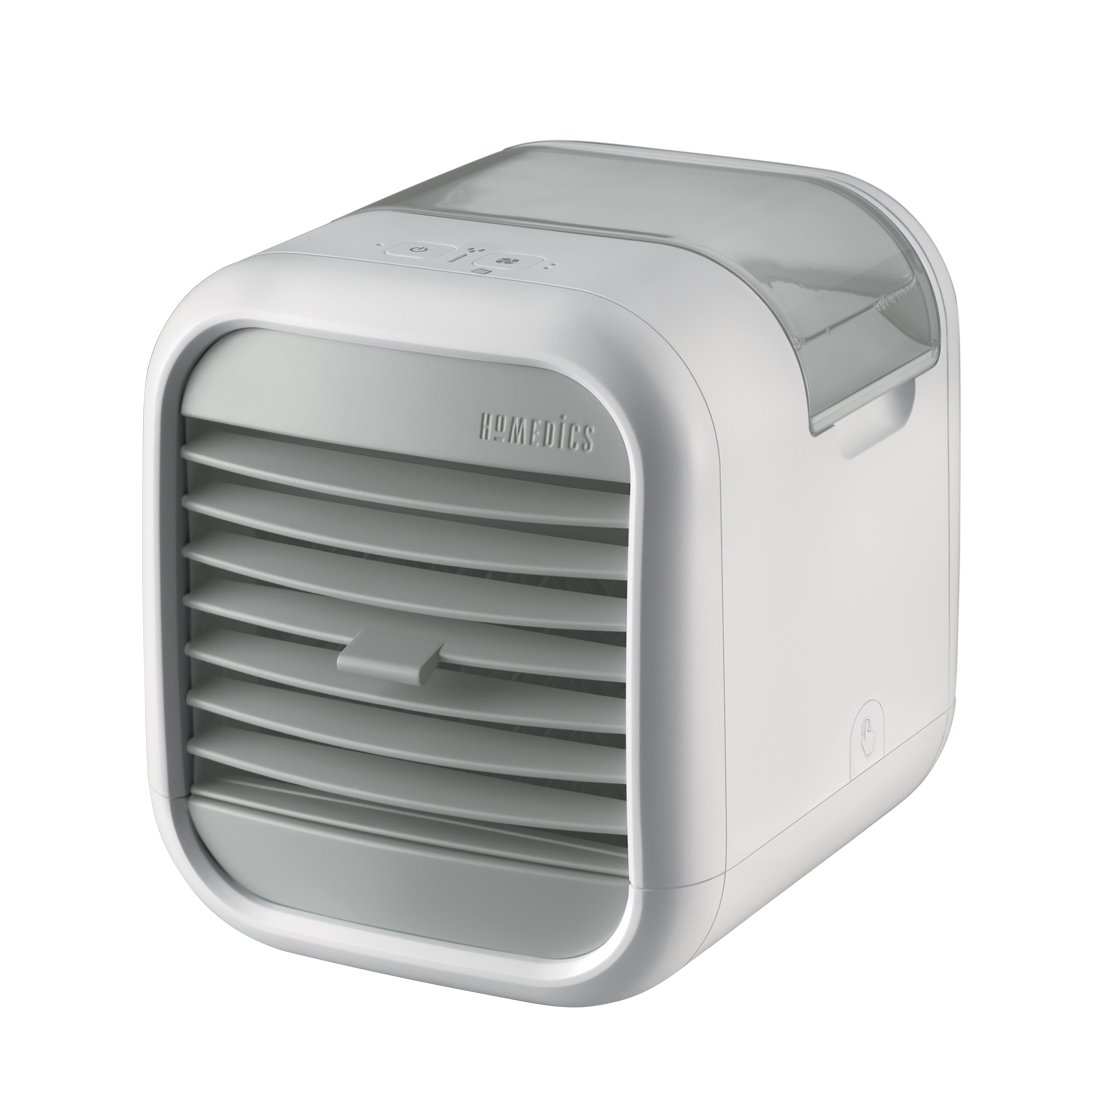 HoMedics MyChill 2 Personal Space Cooler, Chill Room by up to 7 Degrees, 1.2m Cooling Area, 2 Fan Speeds, Adjustable Louvre, Clean Water Tank Technology, Perfect for Office, Lounge, Bedroom - White FKA Brands Ltd PAC-25-EU2